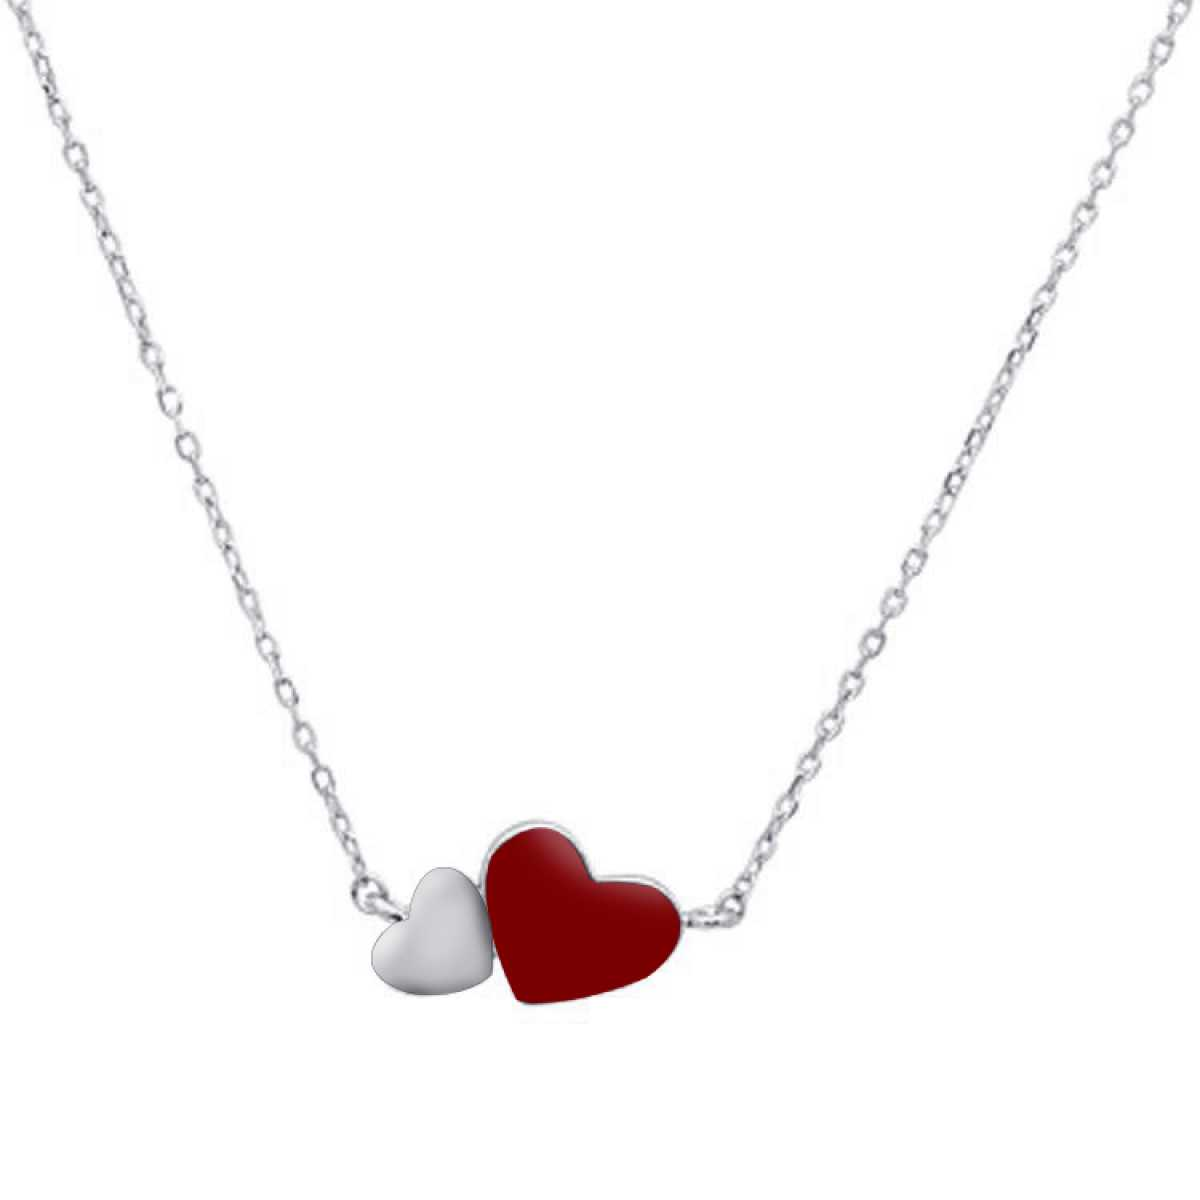 Dual Love Heart Sterling Silver  Chain